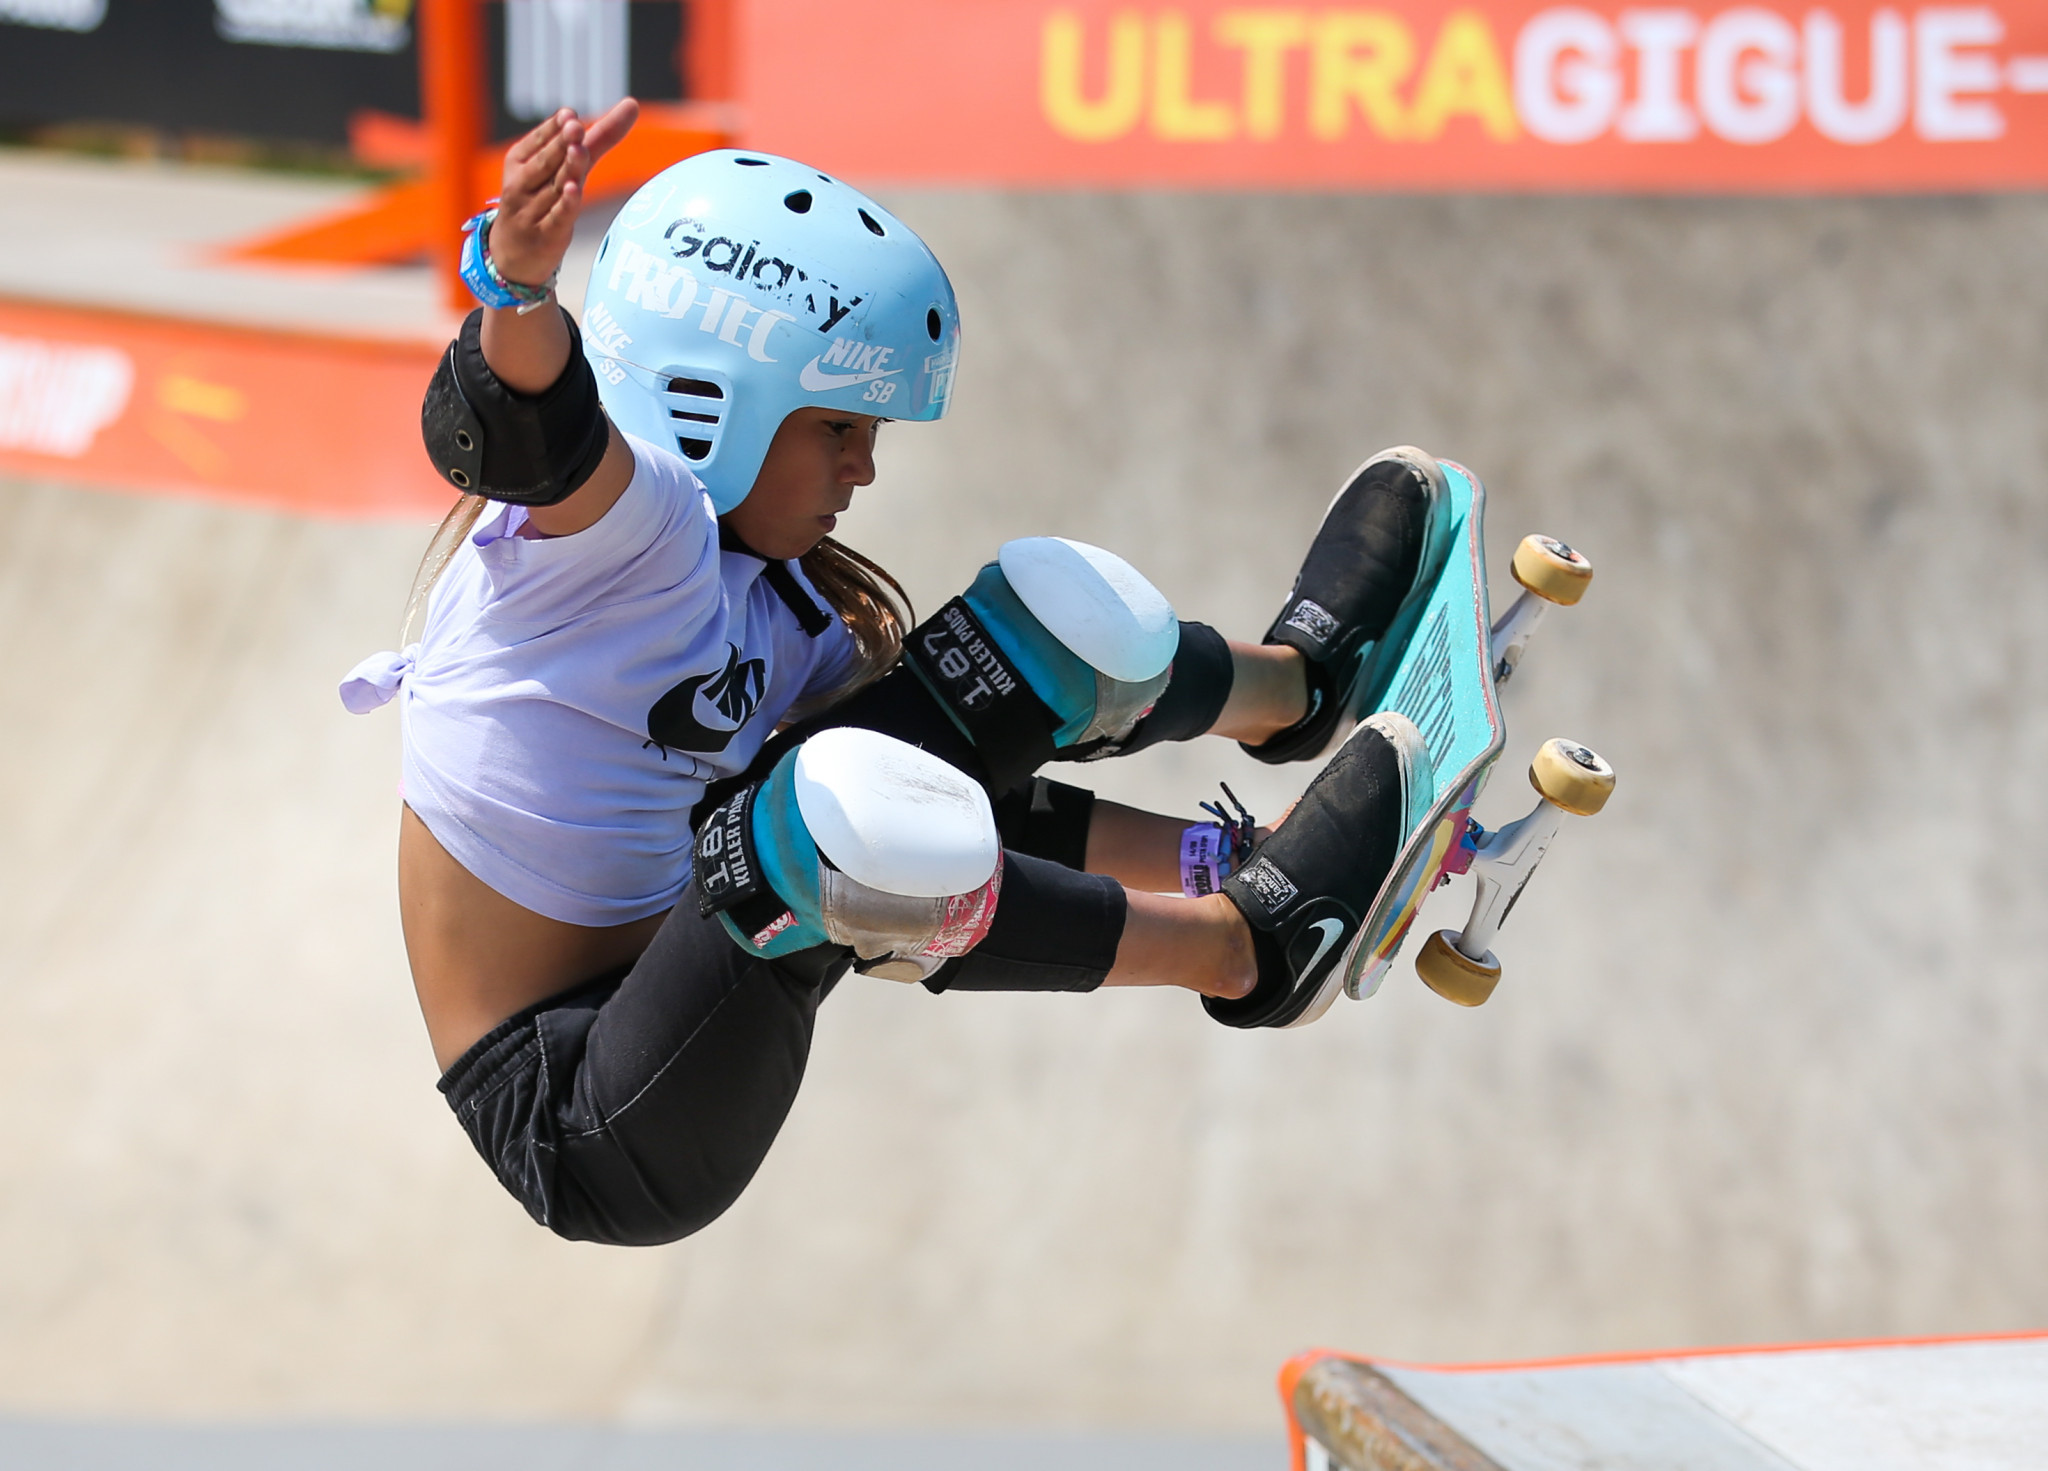 World Skate has suspended the World Skate Open Lima 2020 due to COVID-19 ©Getty Images